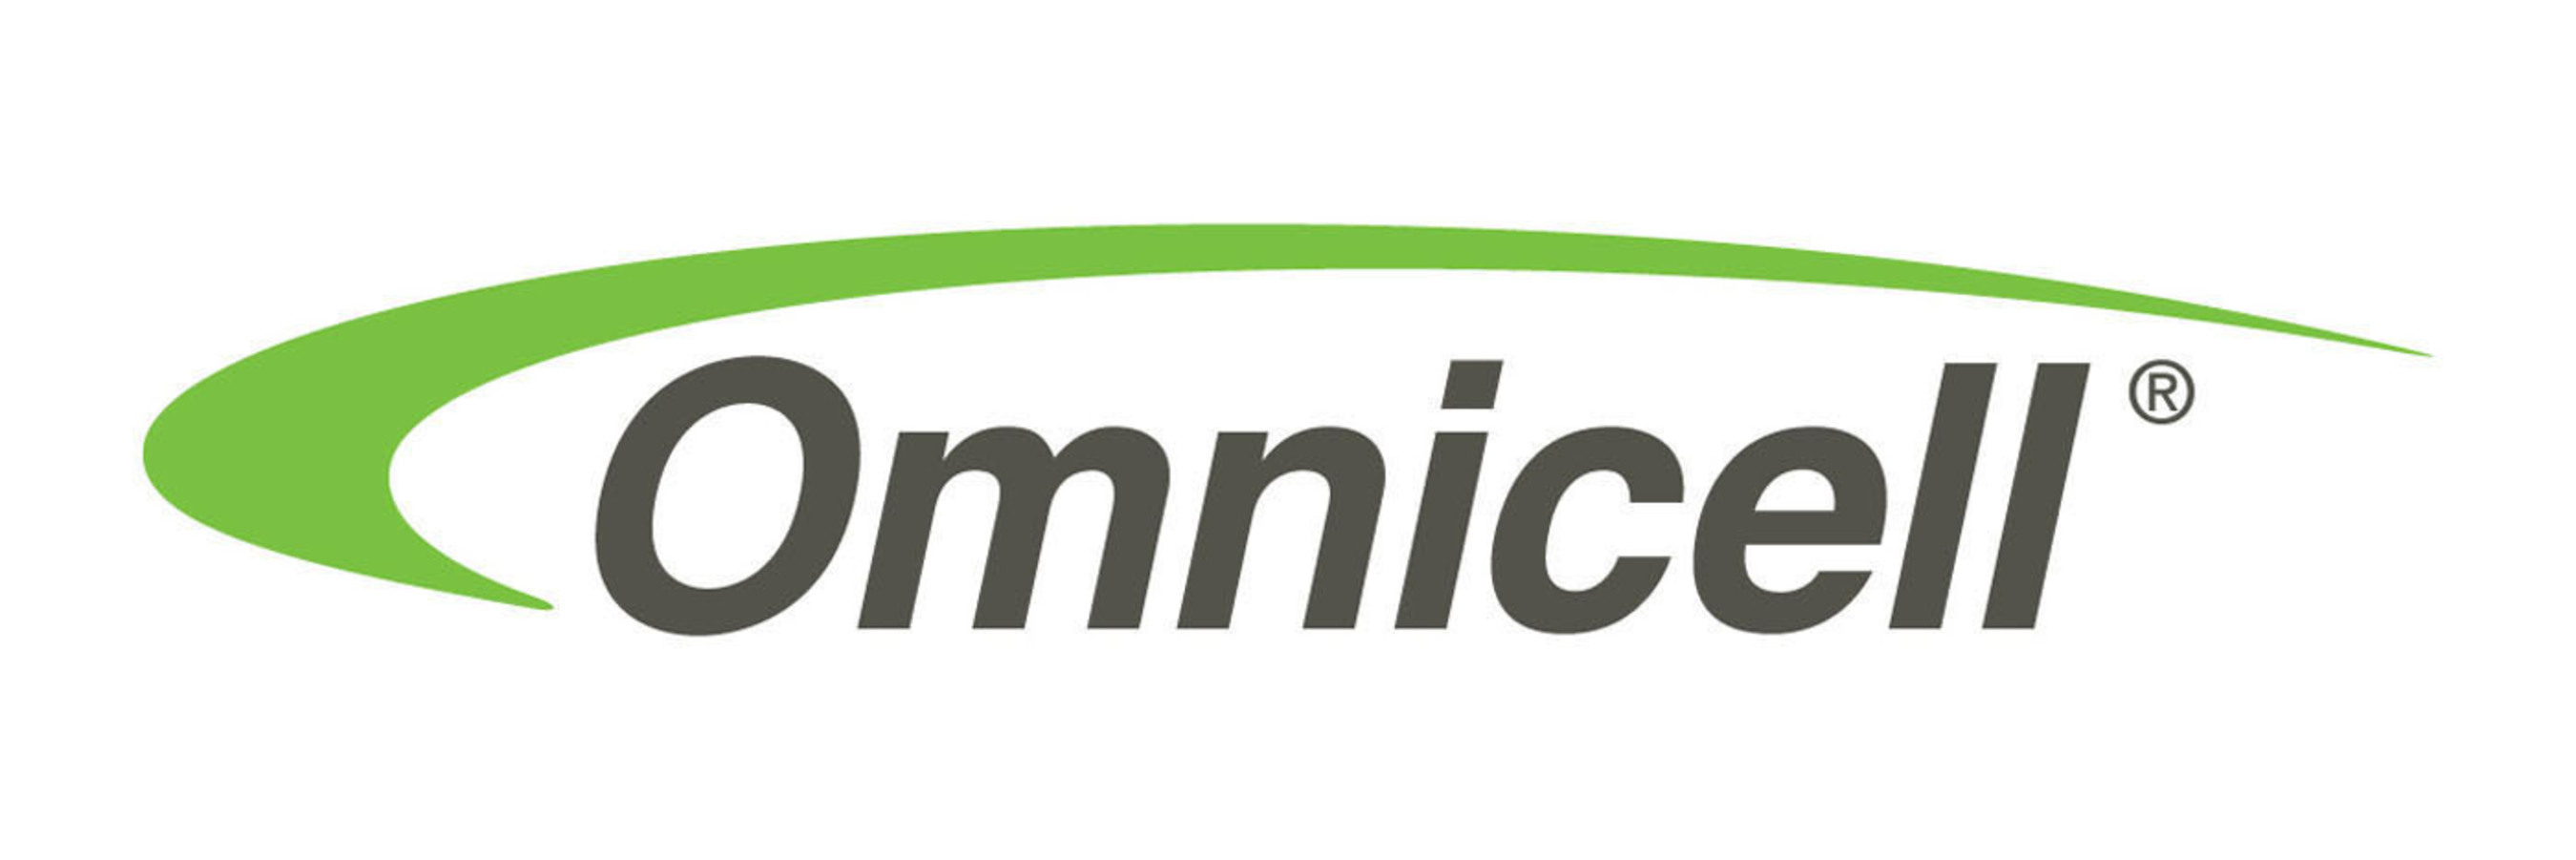 Omnicell präsentiert der European Association of Hospital Pharmacists seine erweiterte